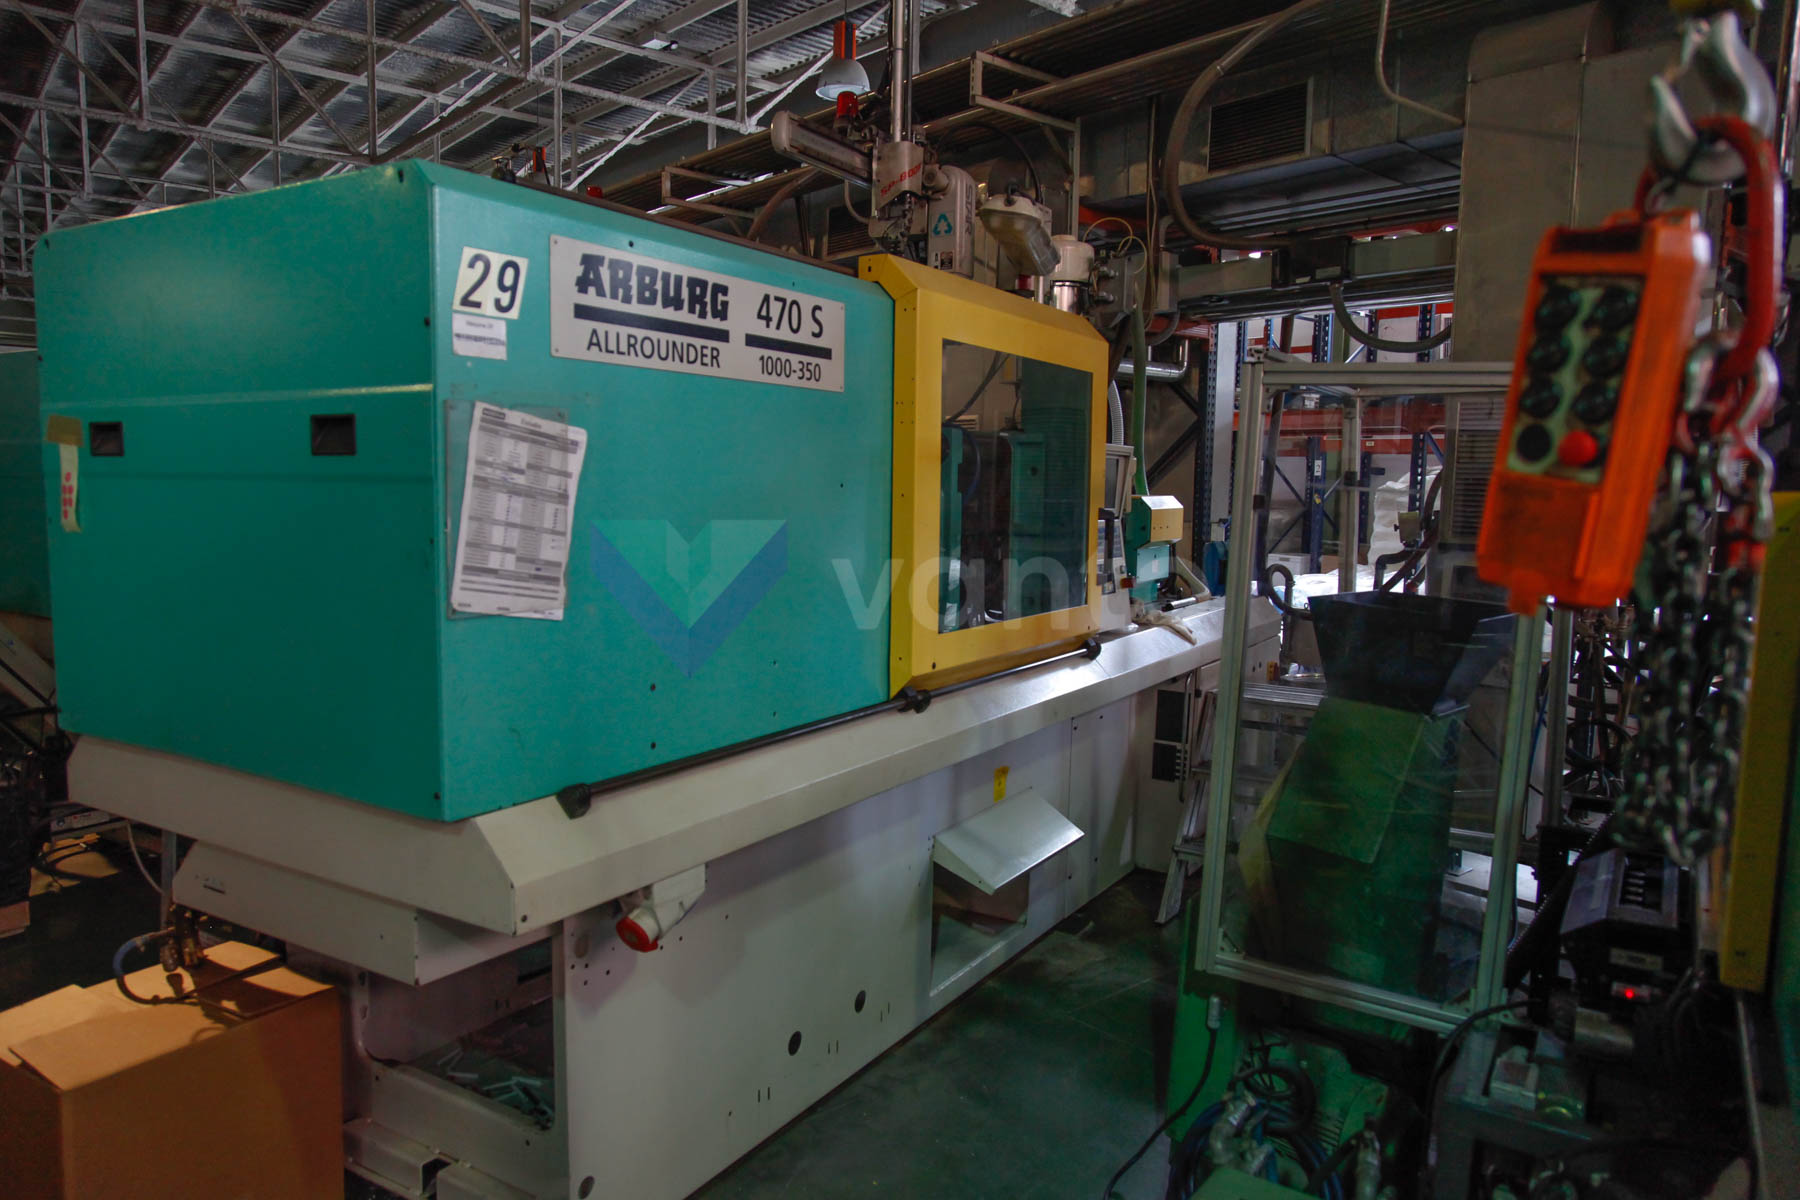 ARBURG 470 S ALLROUNDER 1000 - 350 100t injection molding machine (2000) id4542